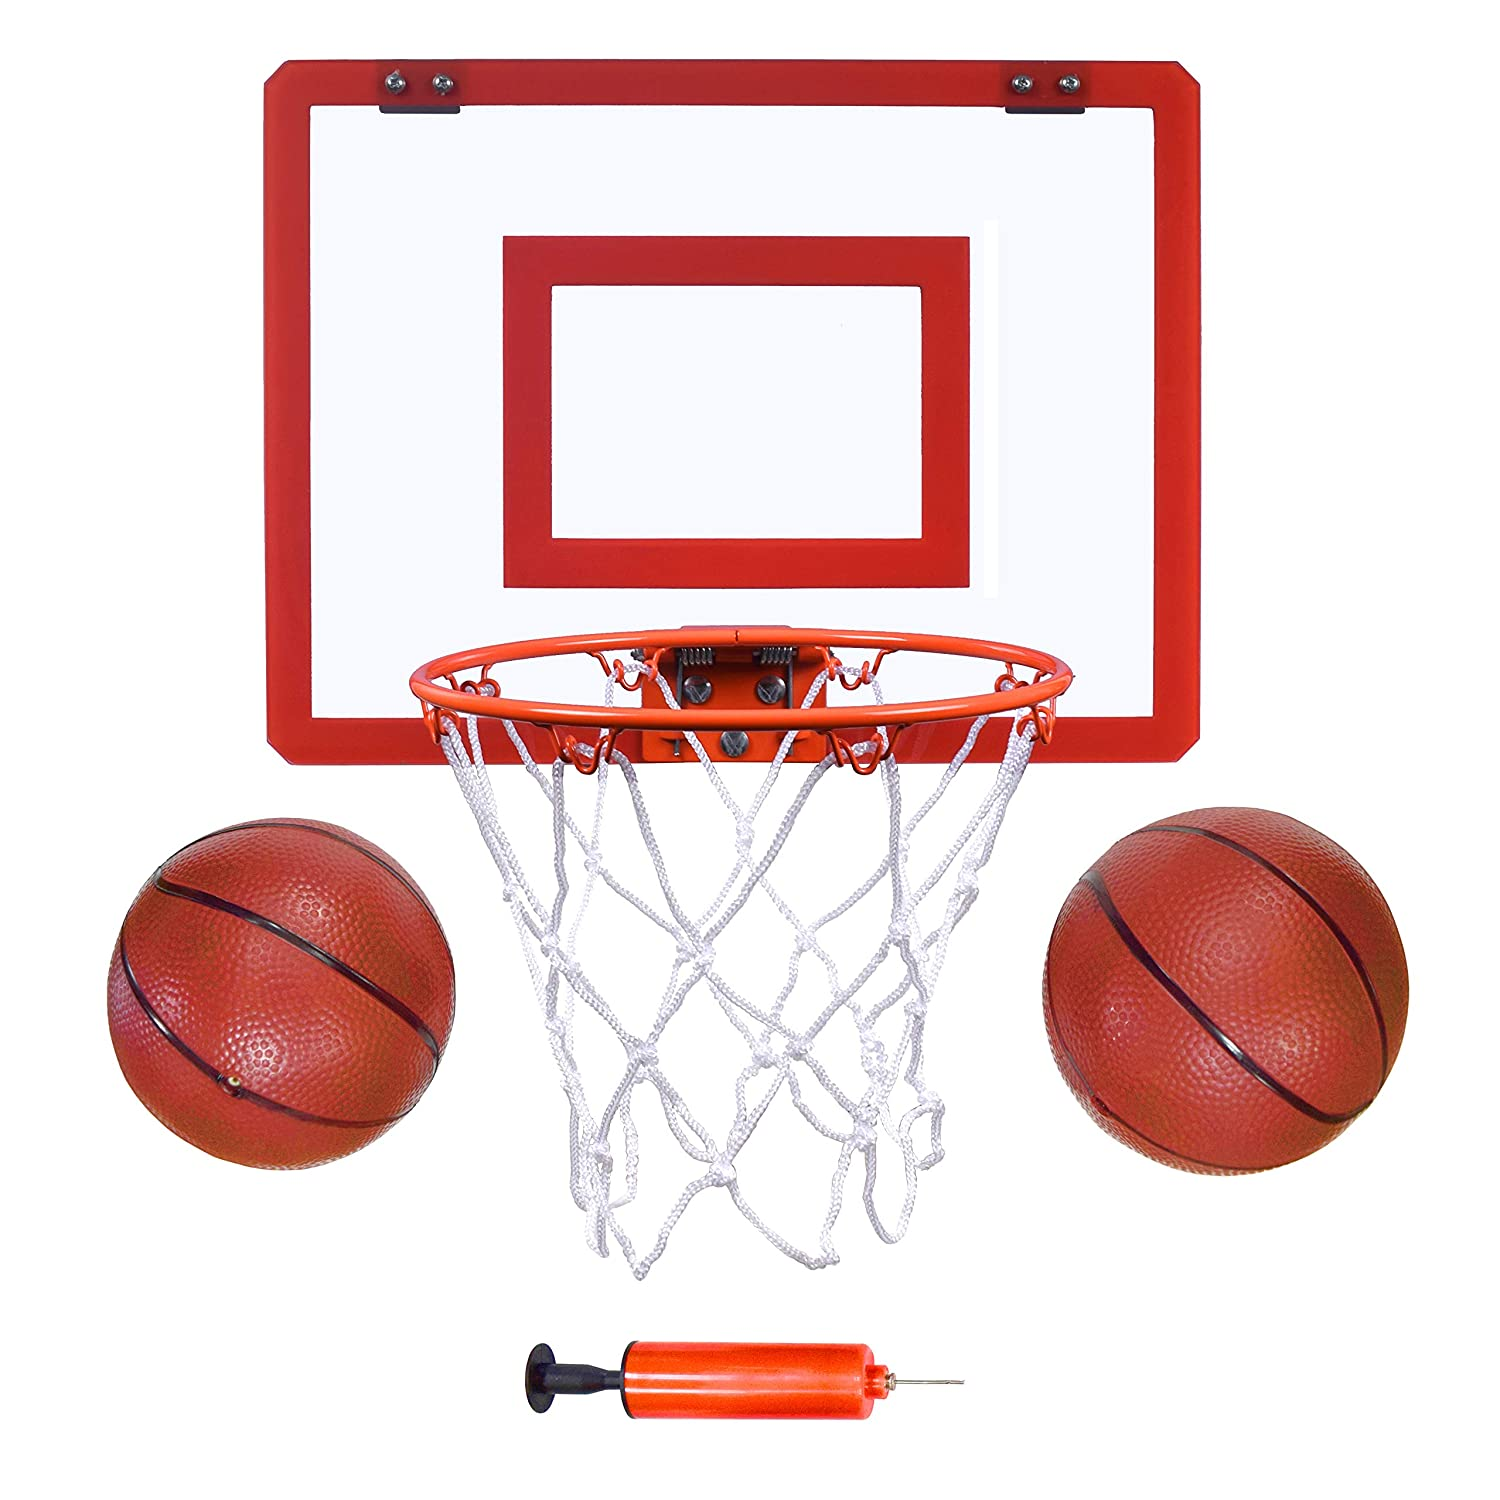 "Indoor Mini Basketball Hoop and Balls 16""x12 - Basketball Hoop for Door Set - Indoor Mini Basketball Game for Kids"